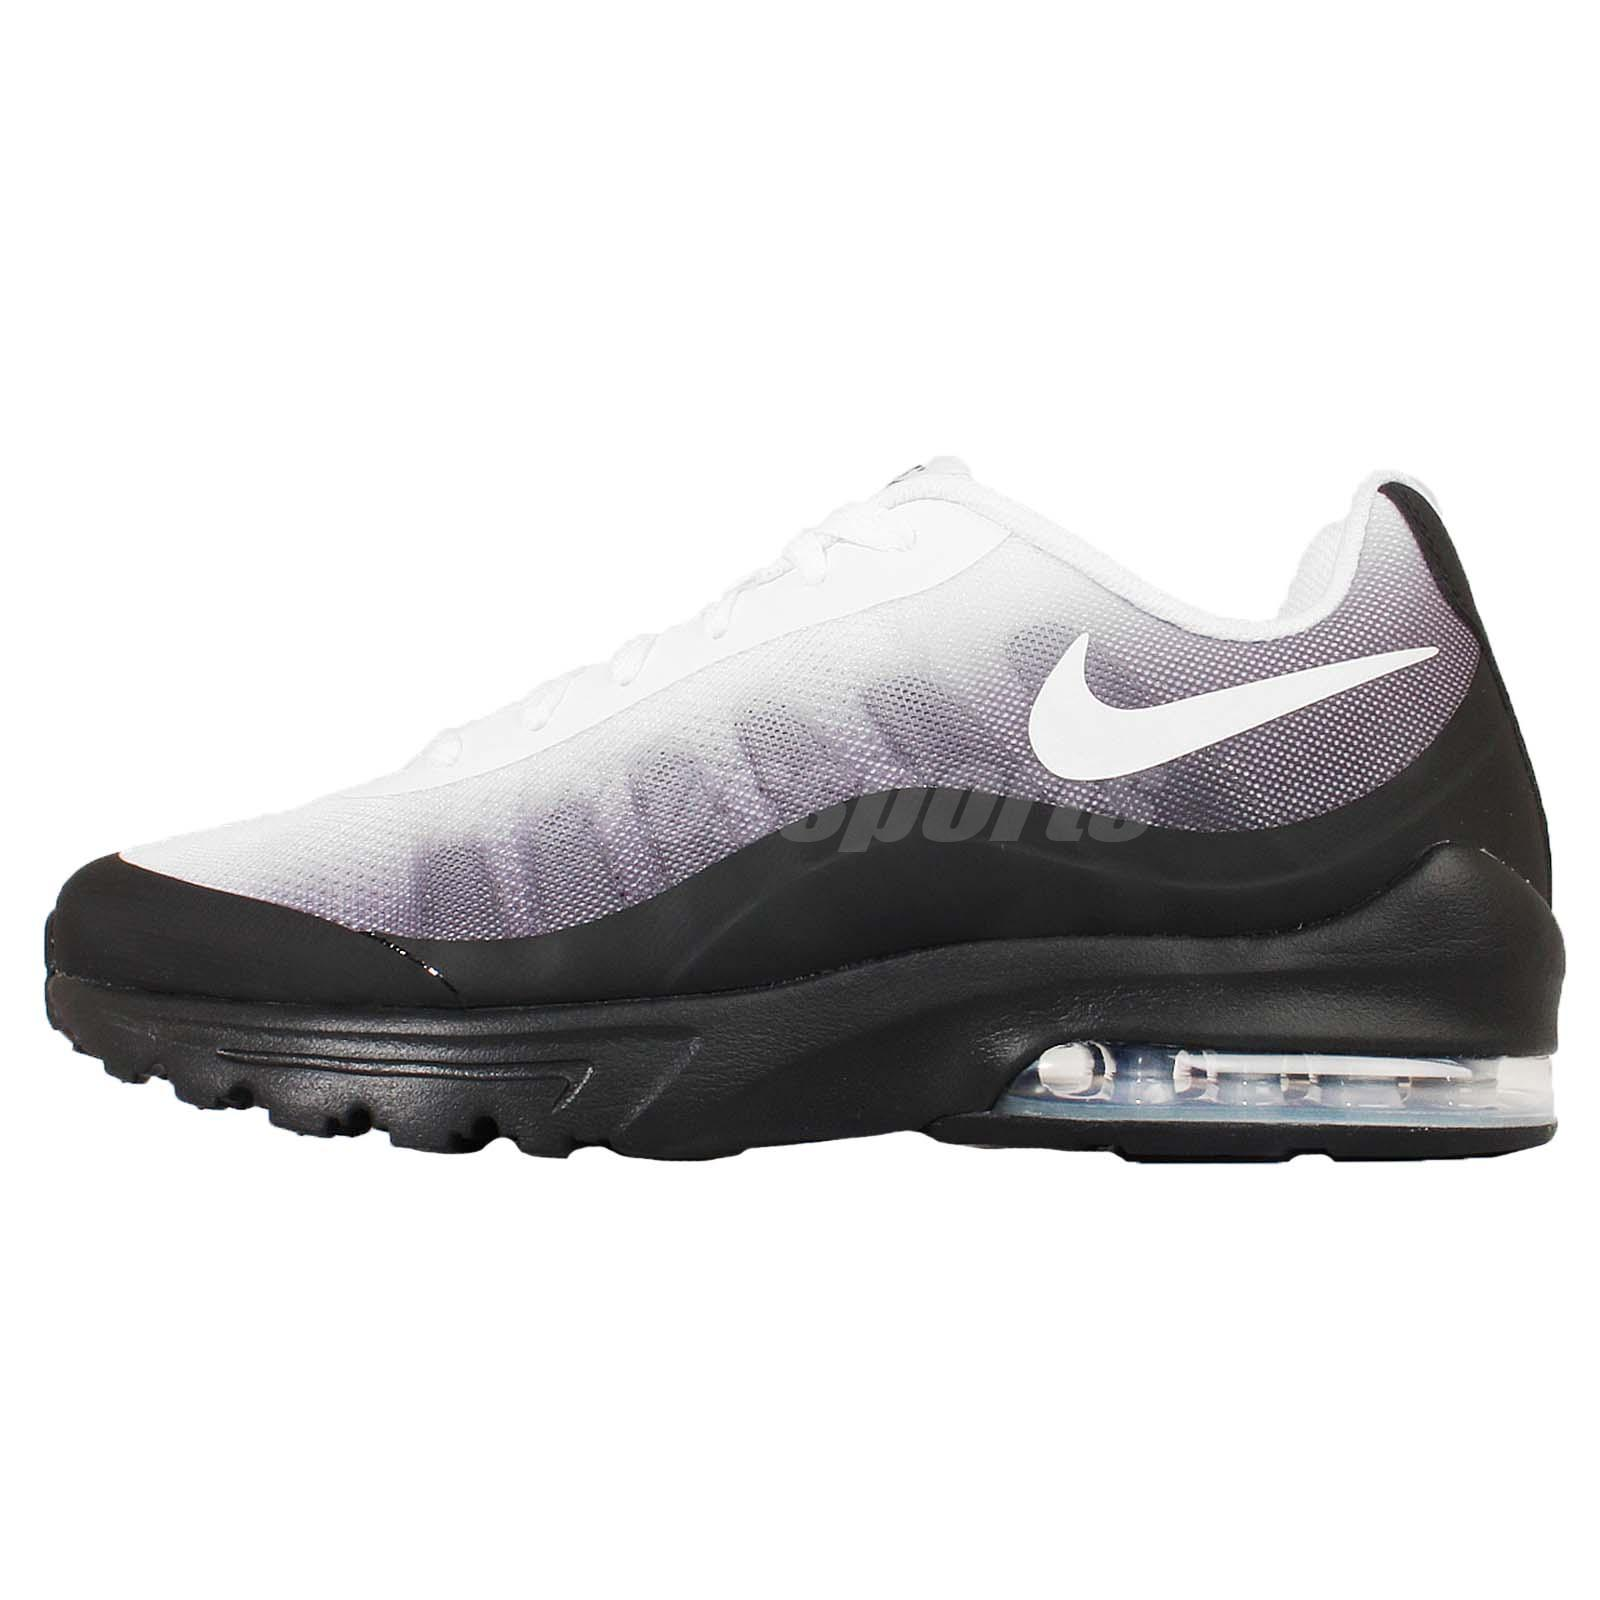 Nike Air Max Invigor Print Black White Mens Running Shoes Air Max 95 749688 010 | eBay